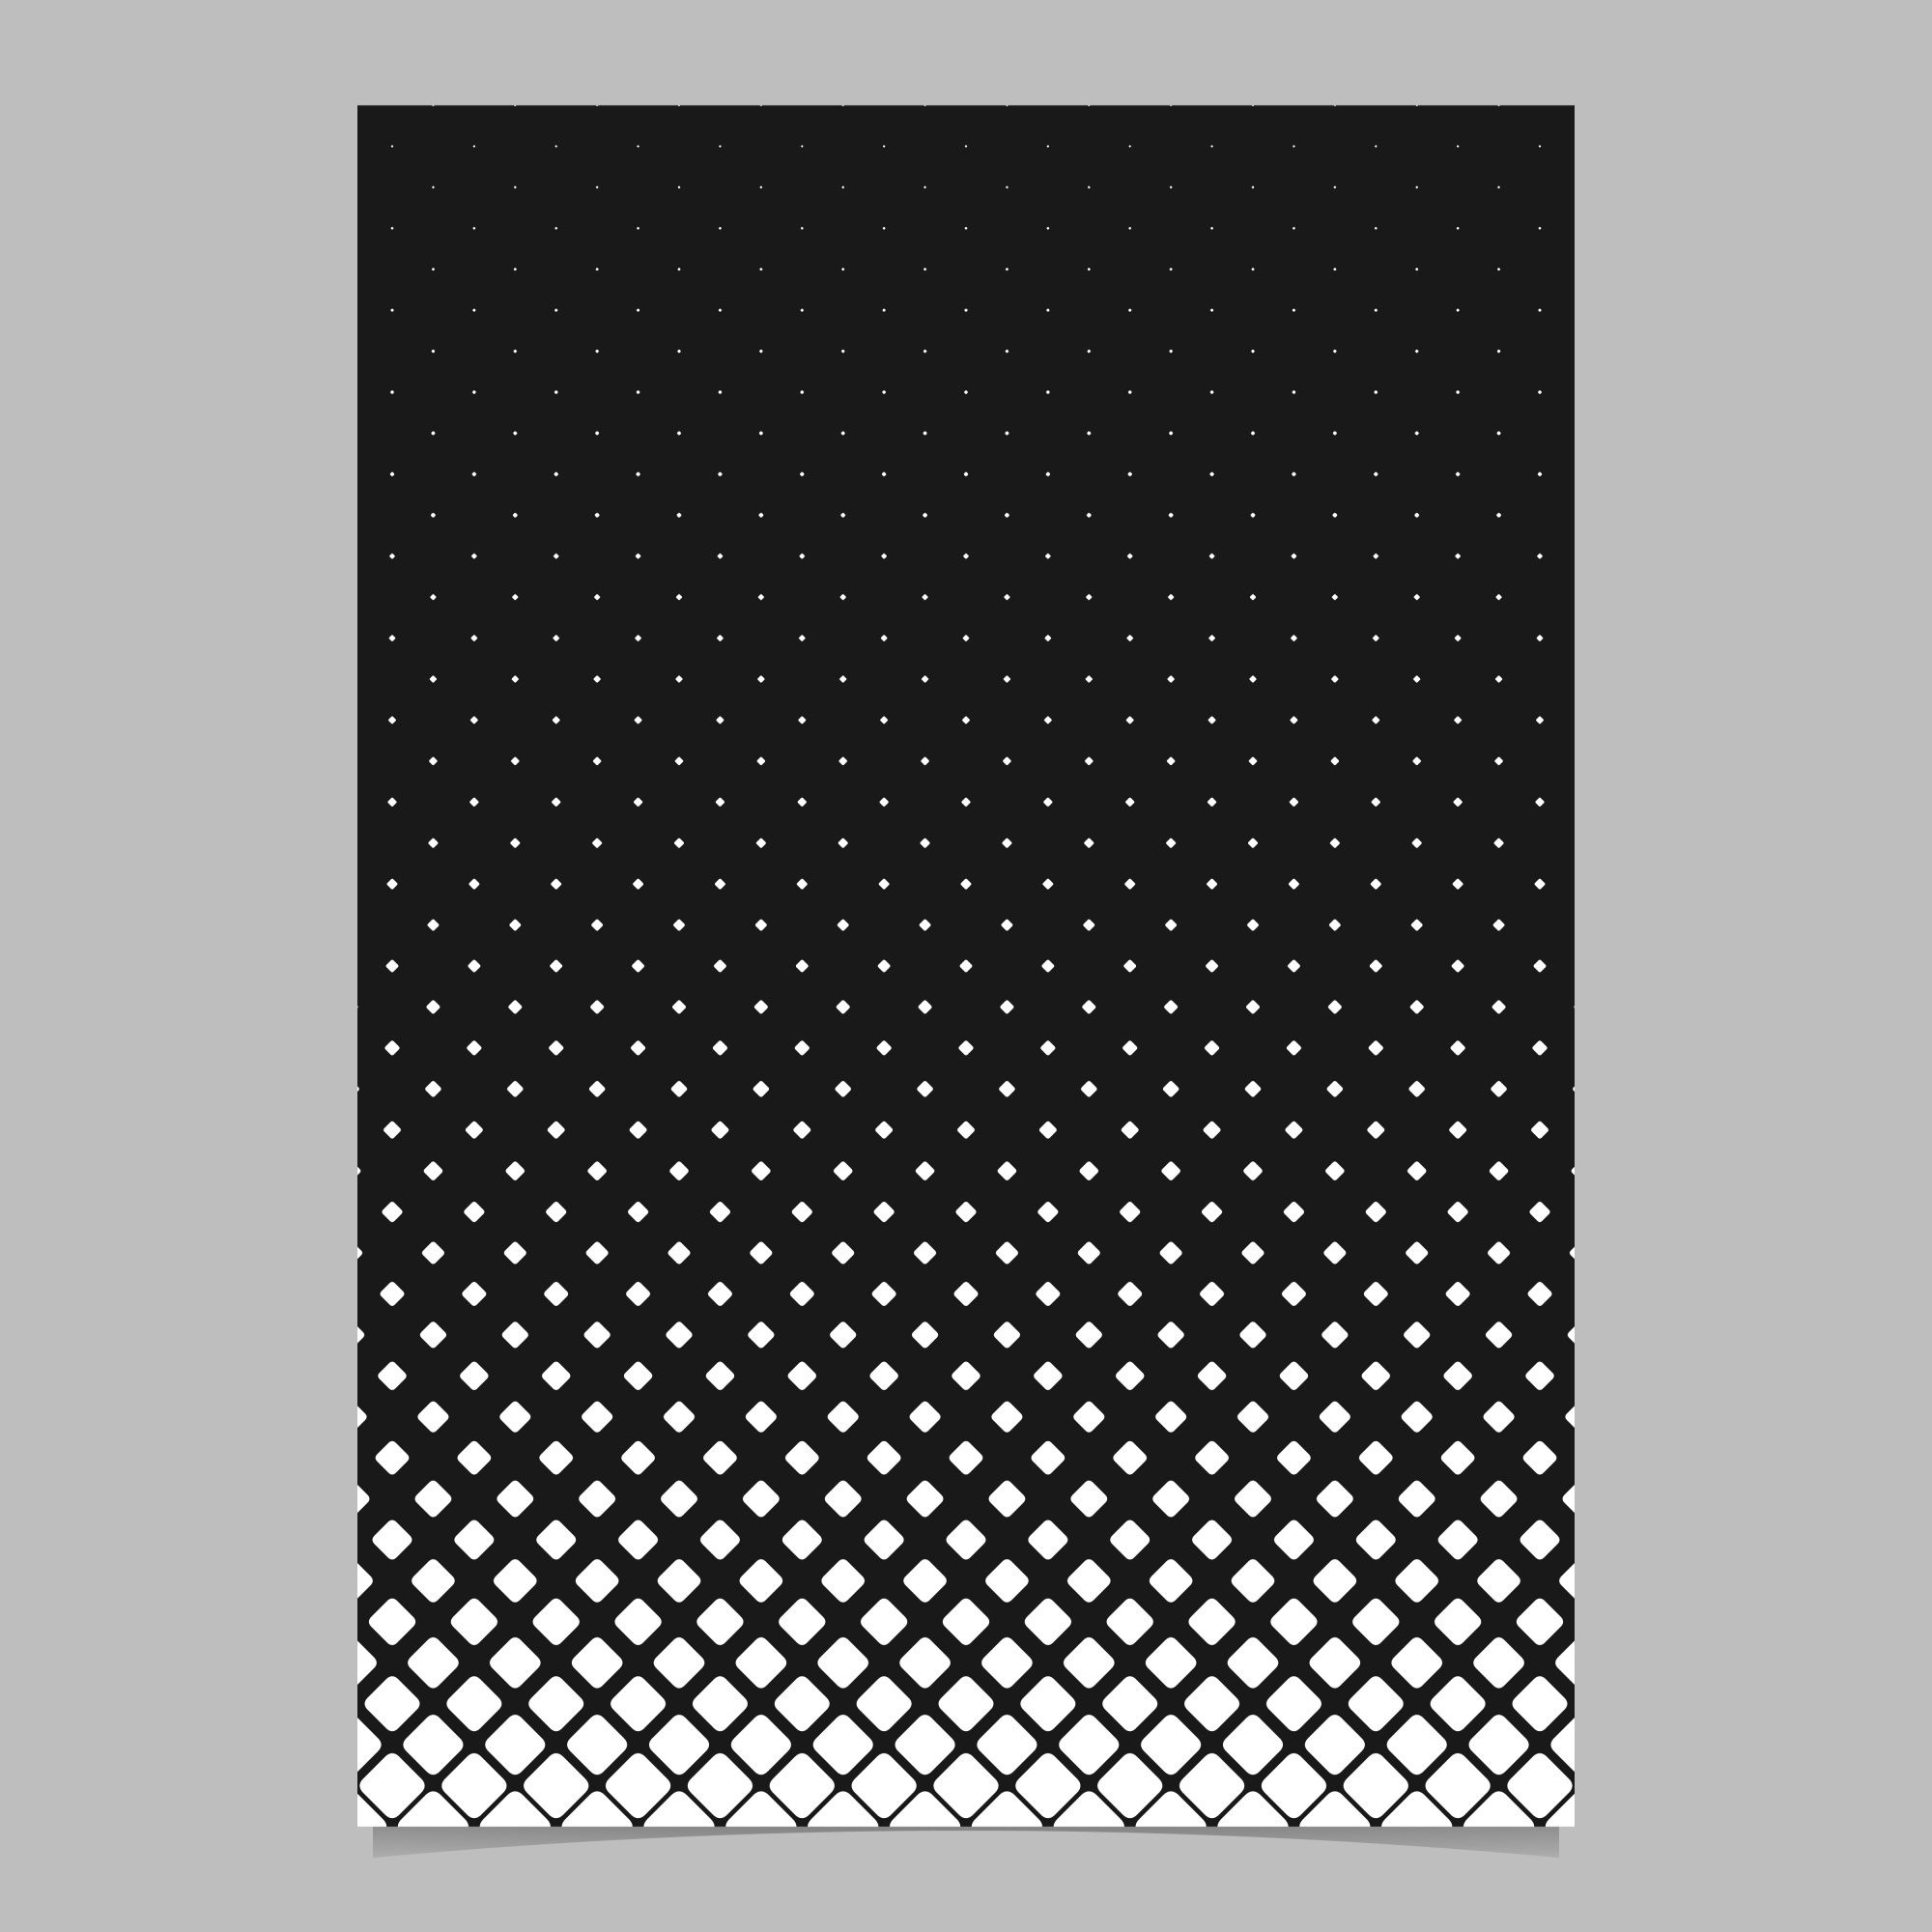 Abstract monochrome diagonal square grid pattern page template - black and white vector brochure background design